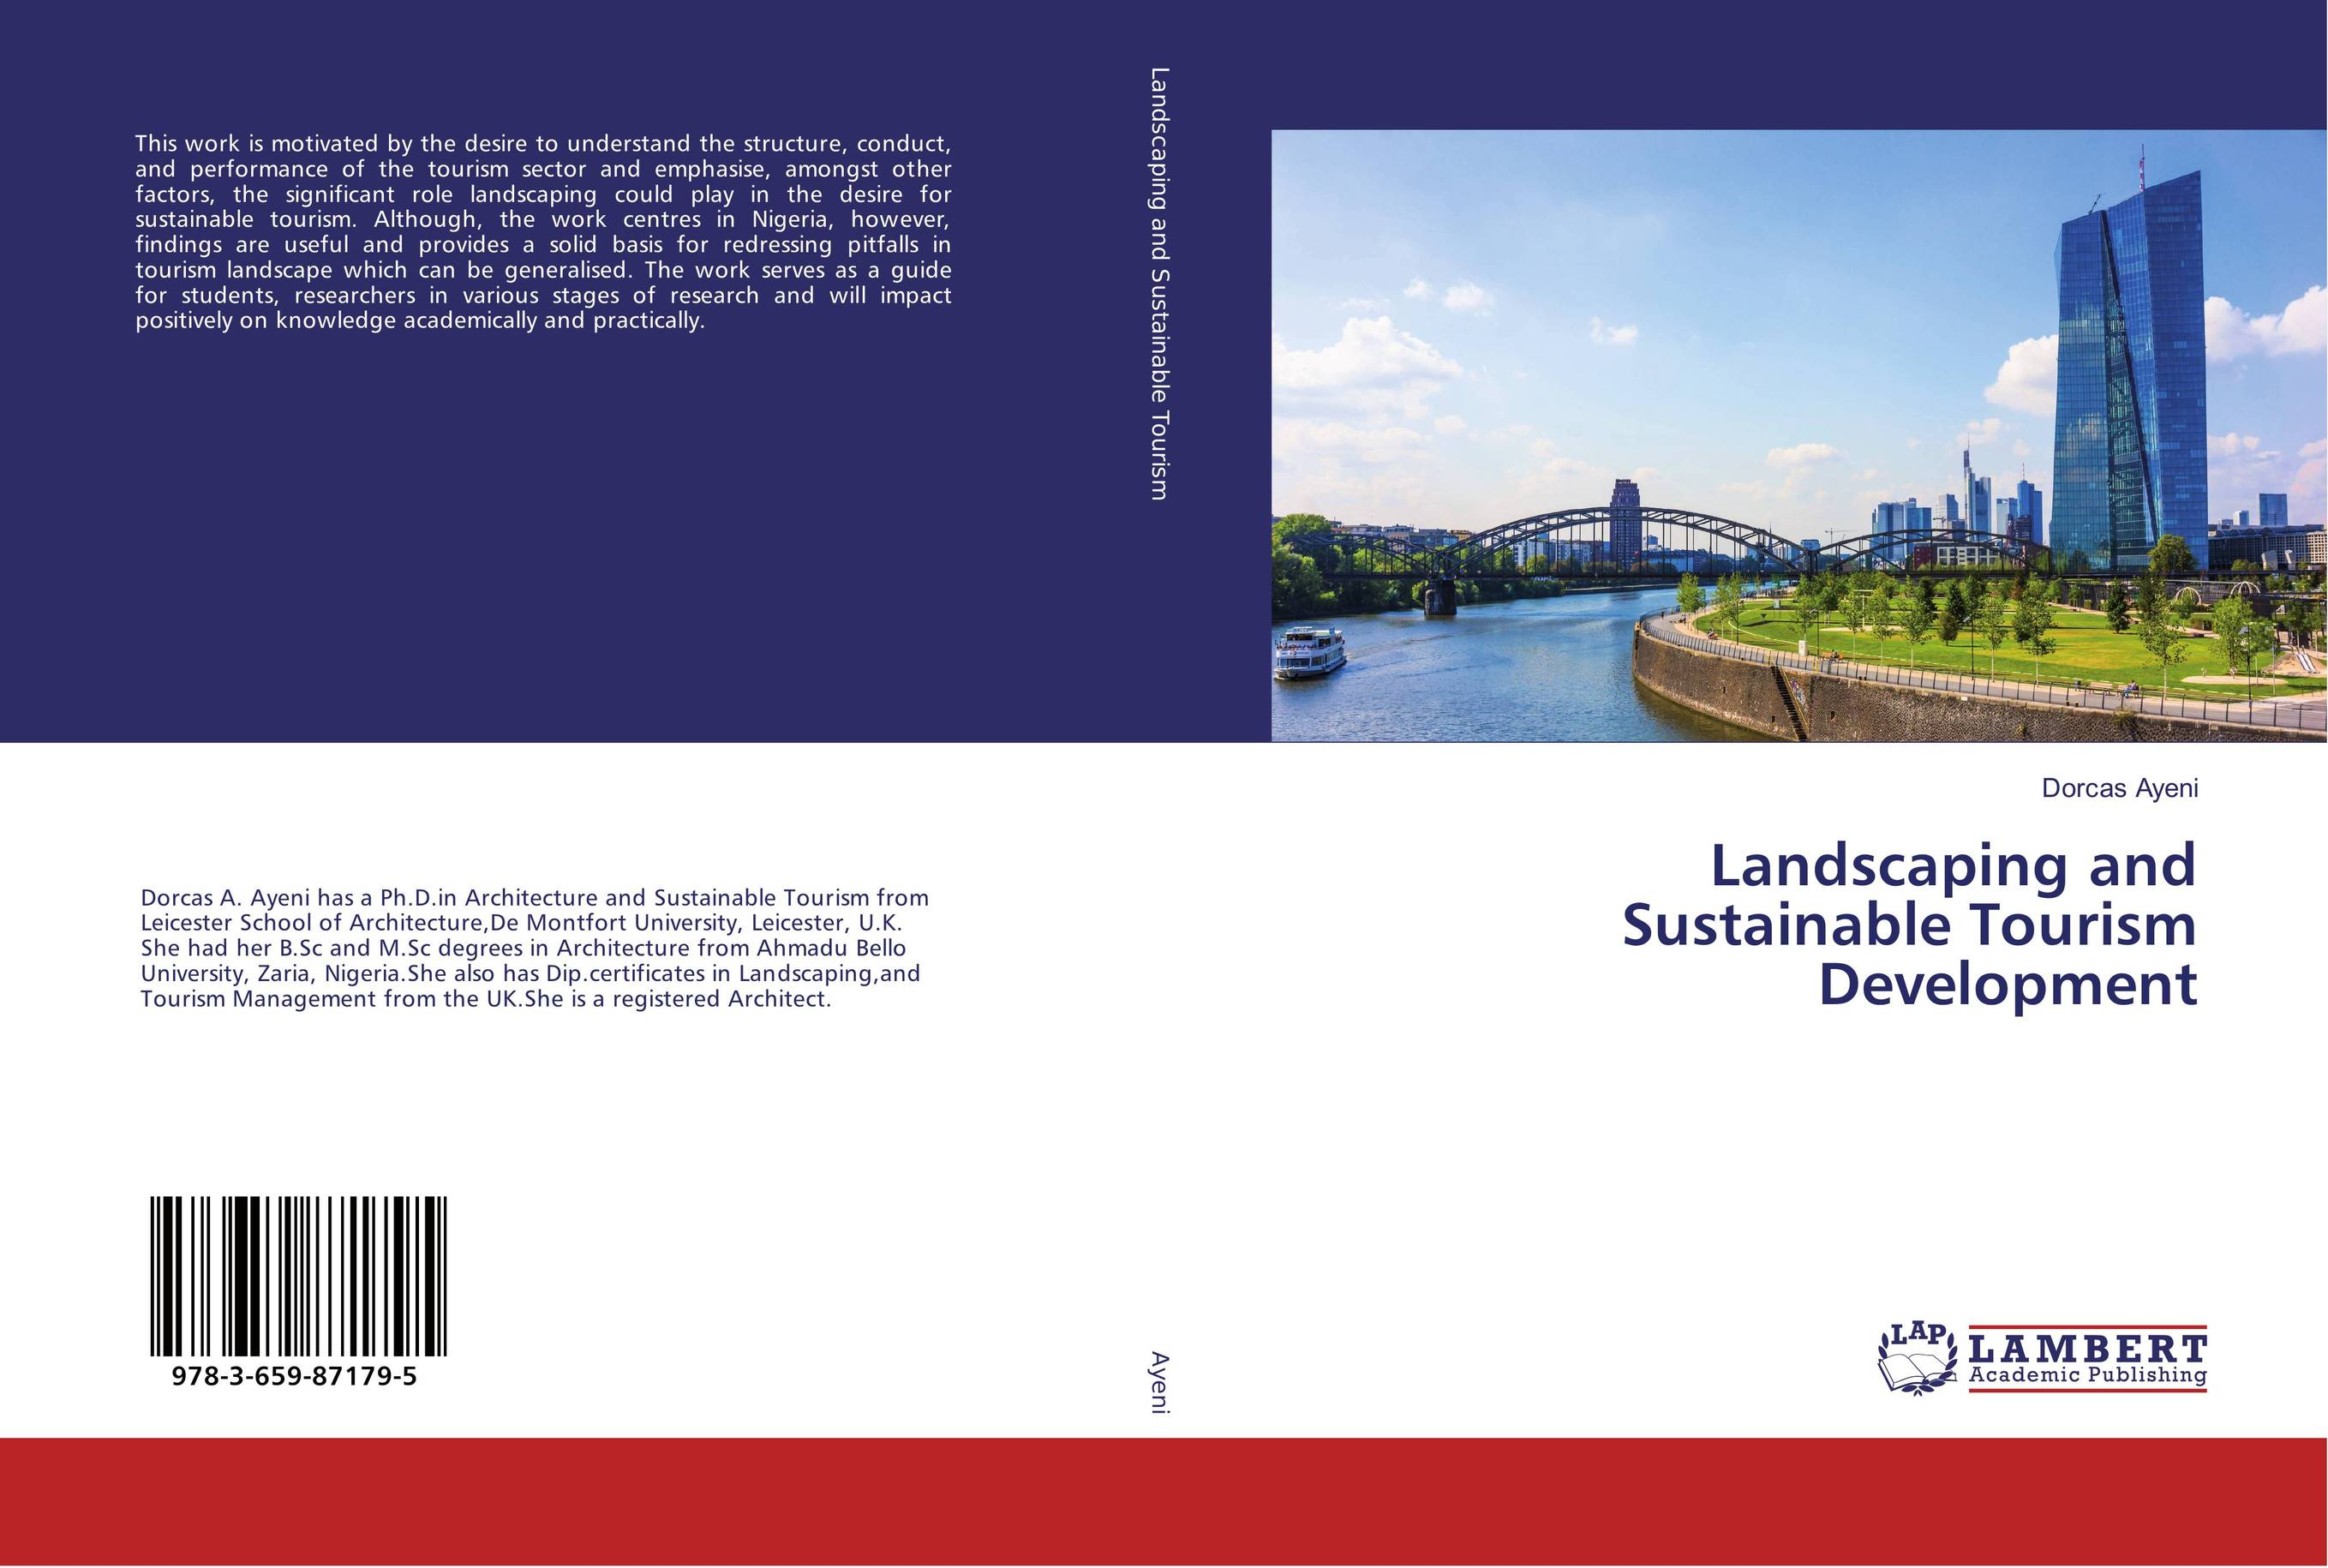 sustainable tourism development work 2